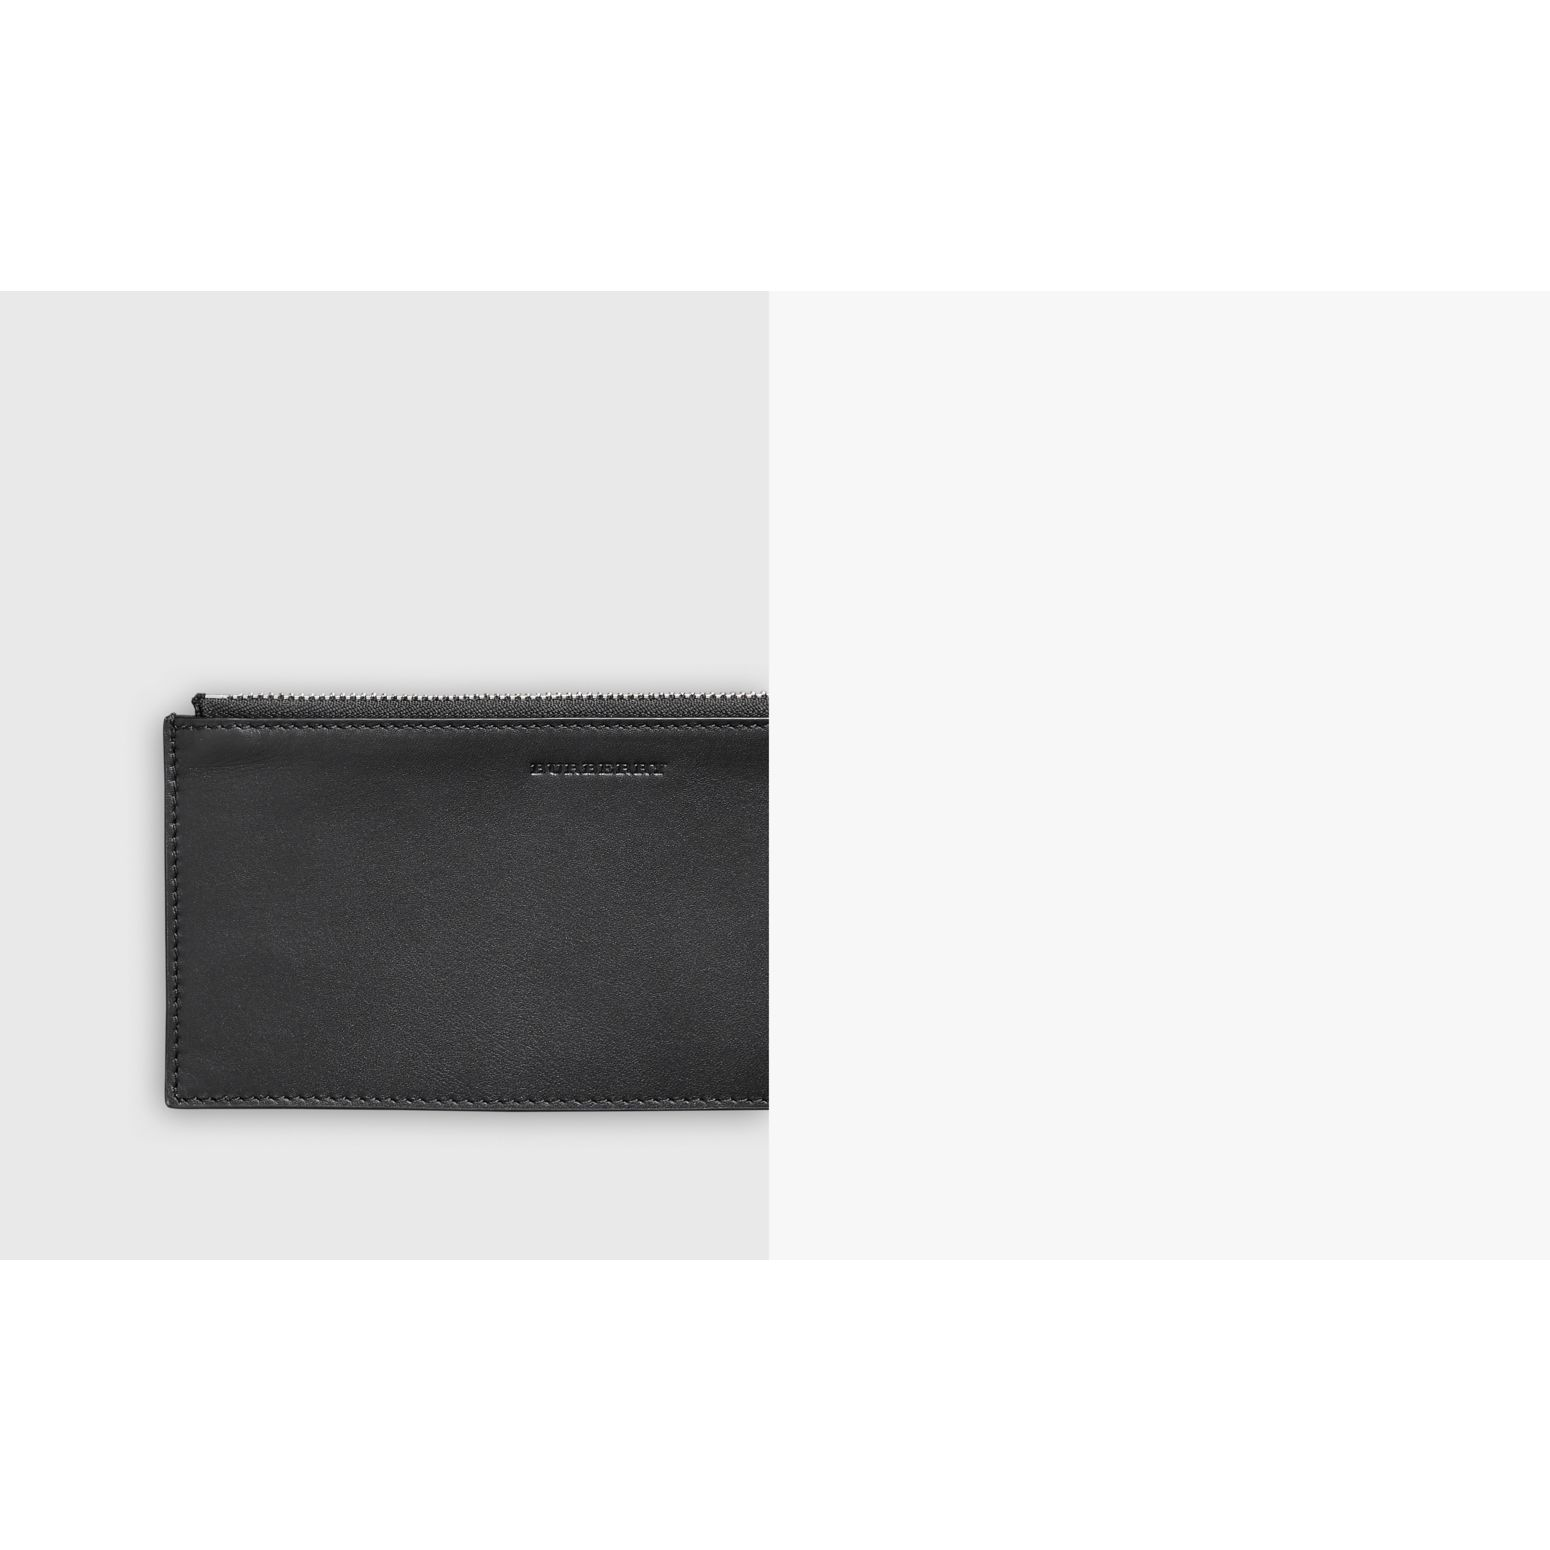 London Leather Travel Wallet in Black - Men | Burberry Singapore - gallery image 1